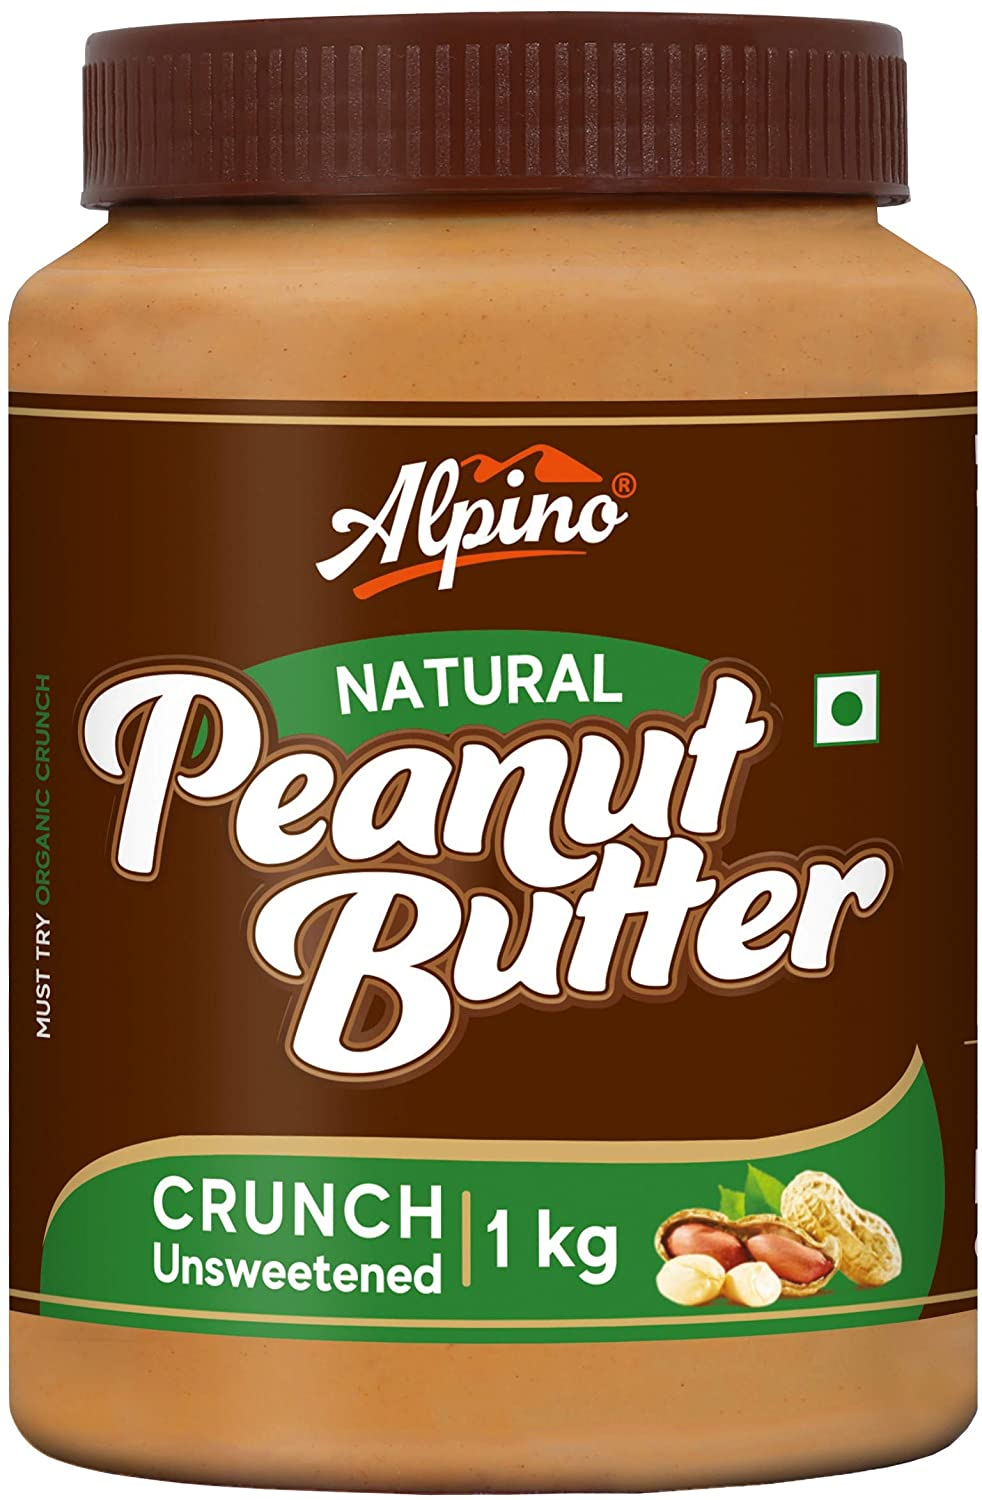 Alpino Natural Peanut Butter Crunch 1 KG / 35 Oz | Unsweetened | Made With 100% Roasted Peanuts | No Added Sugar | No Added Salt | No Hydrogenated Oils | 100% Non-GMO | Gluten-Free | Vegan